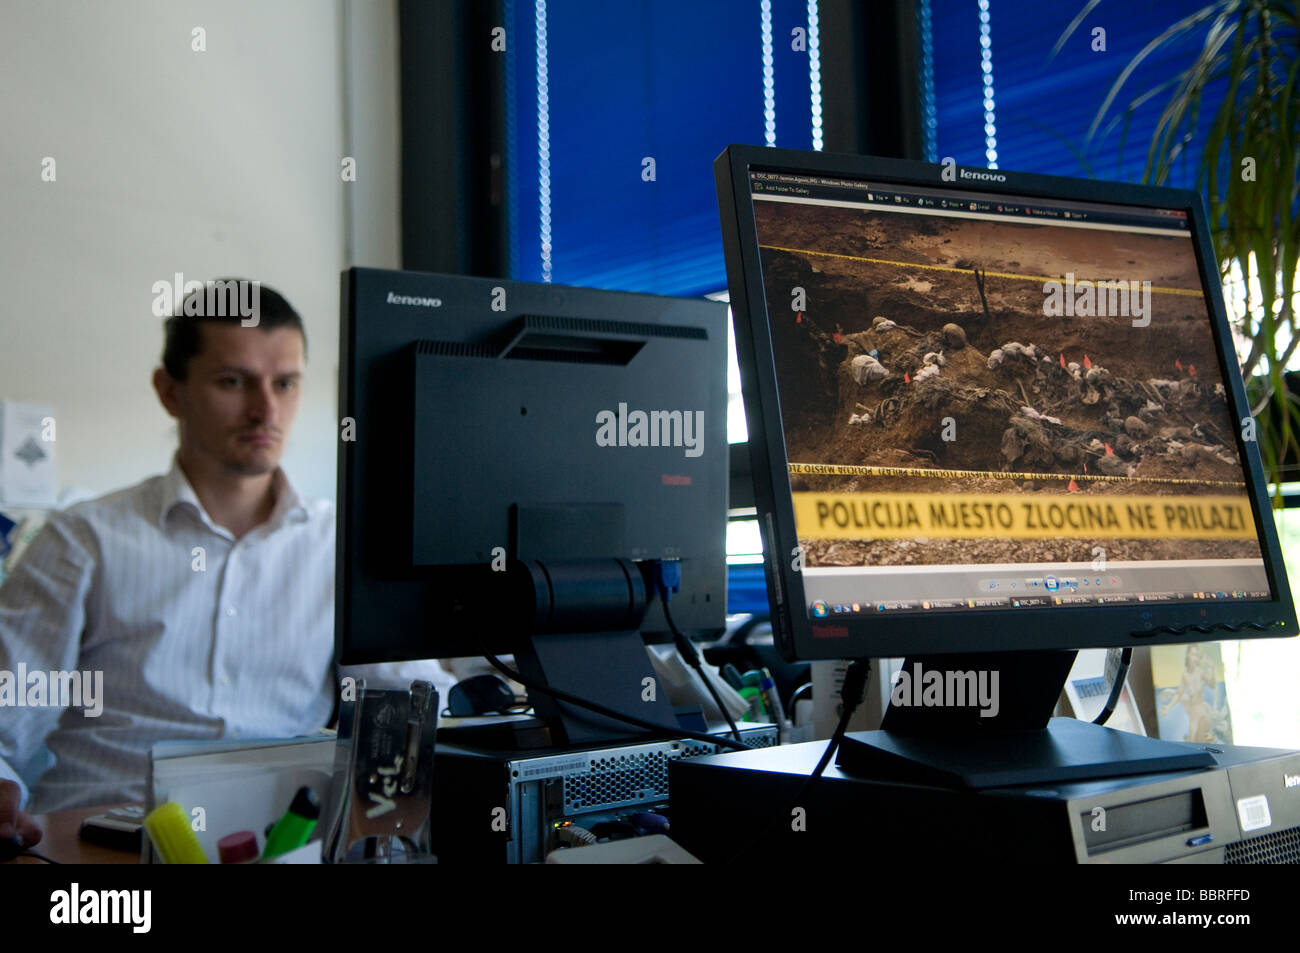 A man works with a computer in ICMP commission of missing persons in Sarajevo, Bosnia - Stock Image